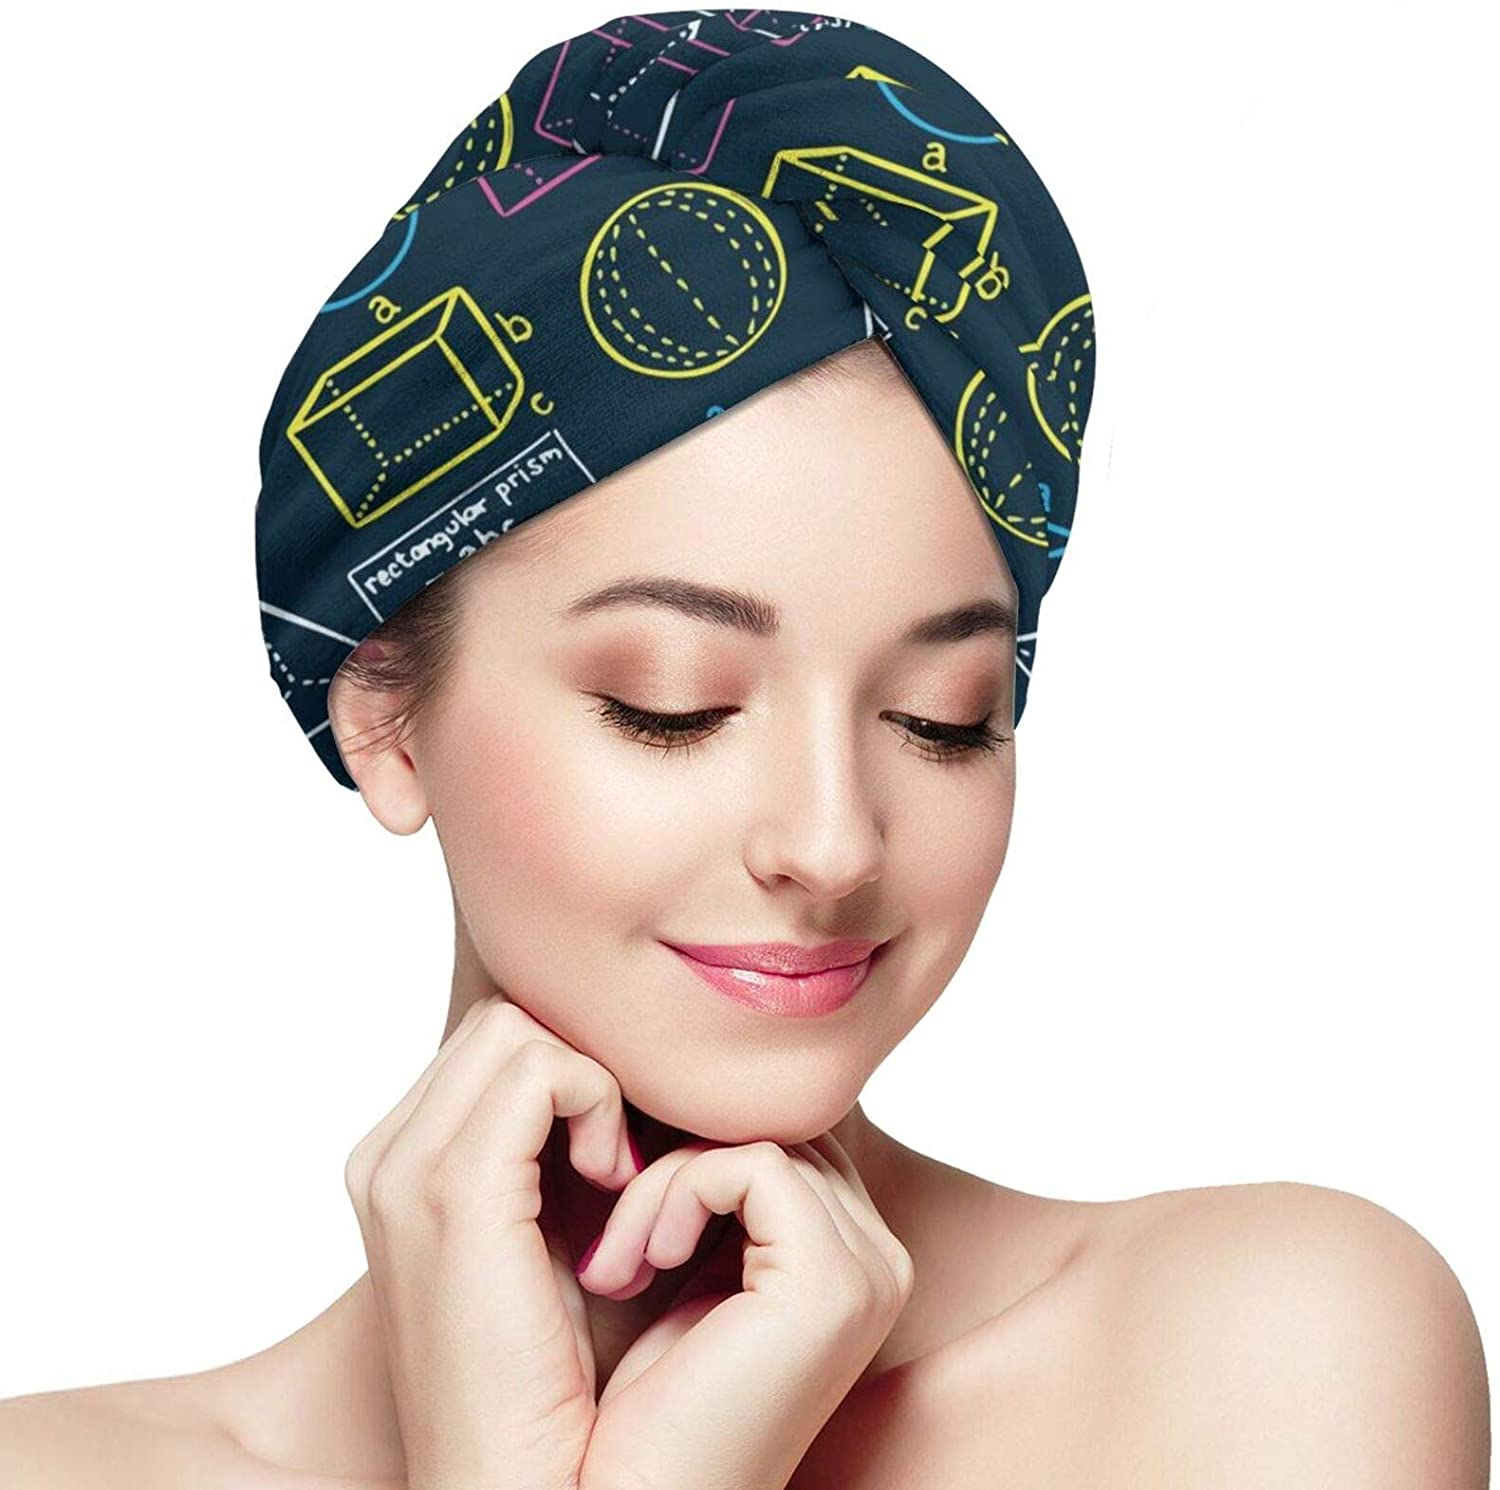 NiYoung Ladies Math Equation School Hair Drying Towels Drying Microfiber Hair Towel Wrap Absorbent Rapid Drying Hair Turban for Dry Hair Quickly